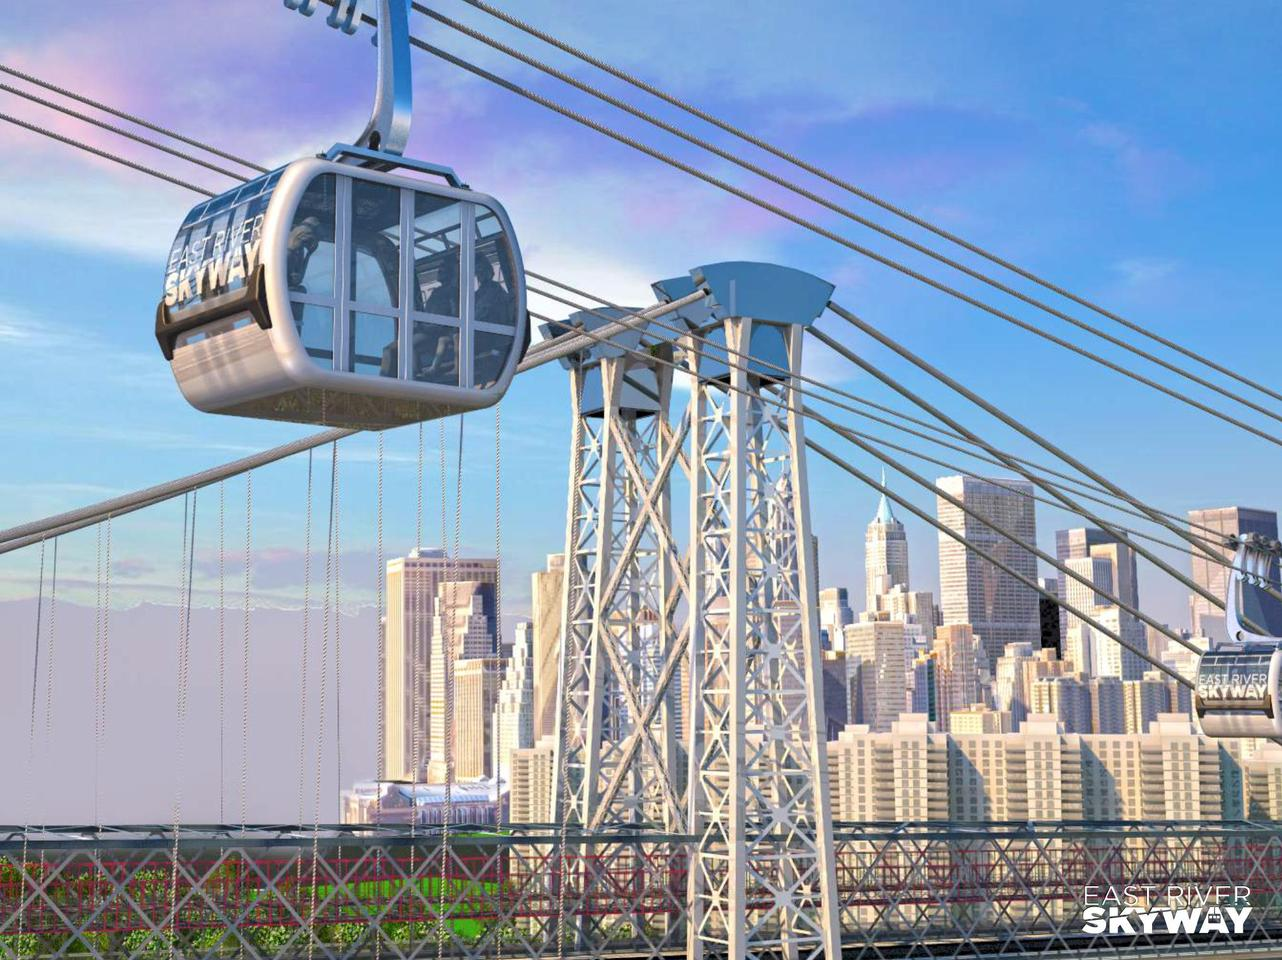 The East River Skyway proposal, by developer CityRealty